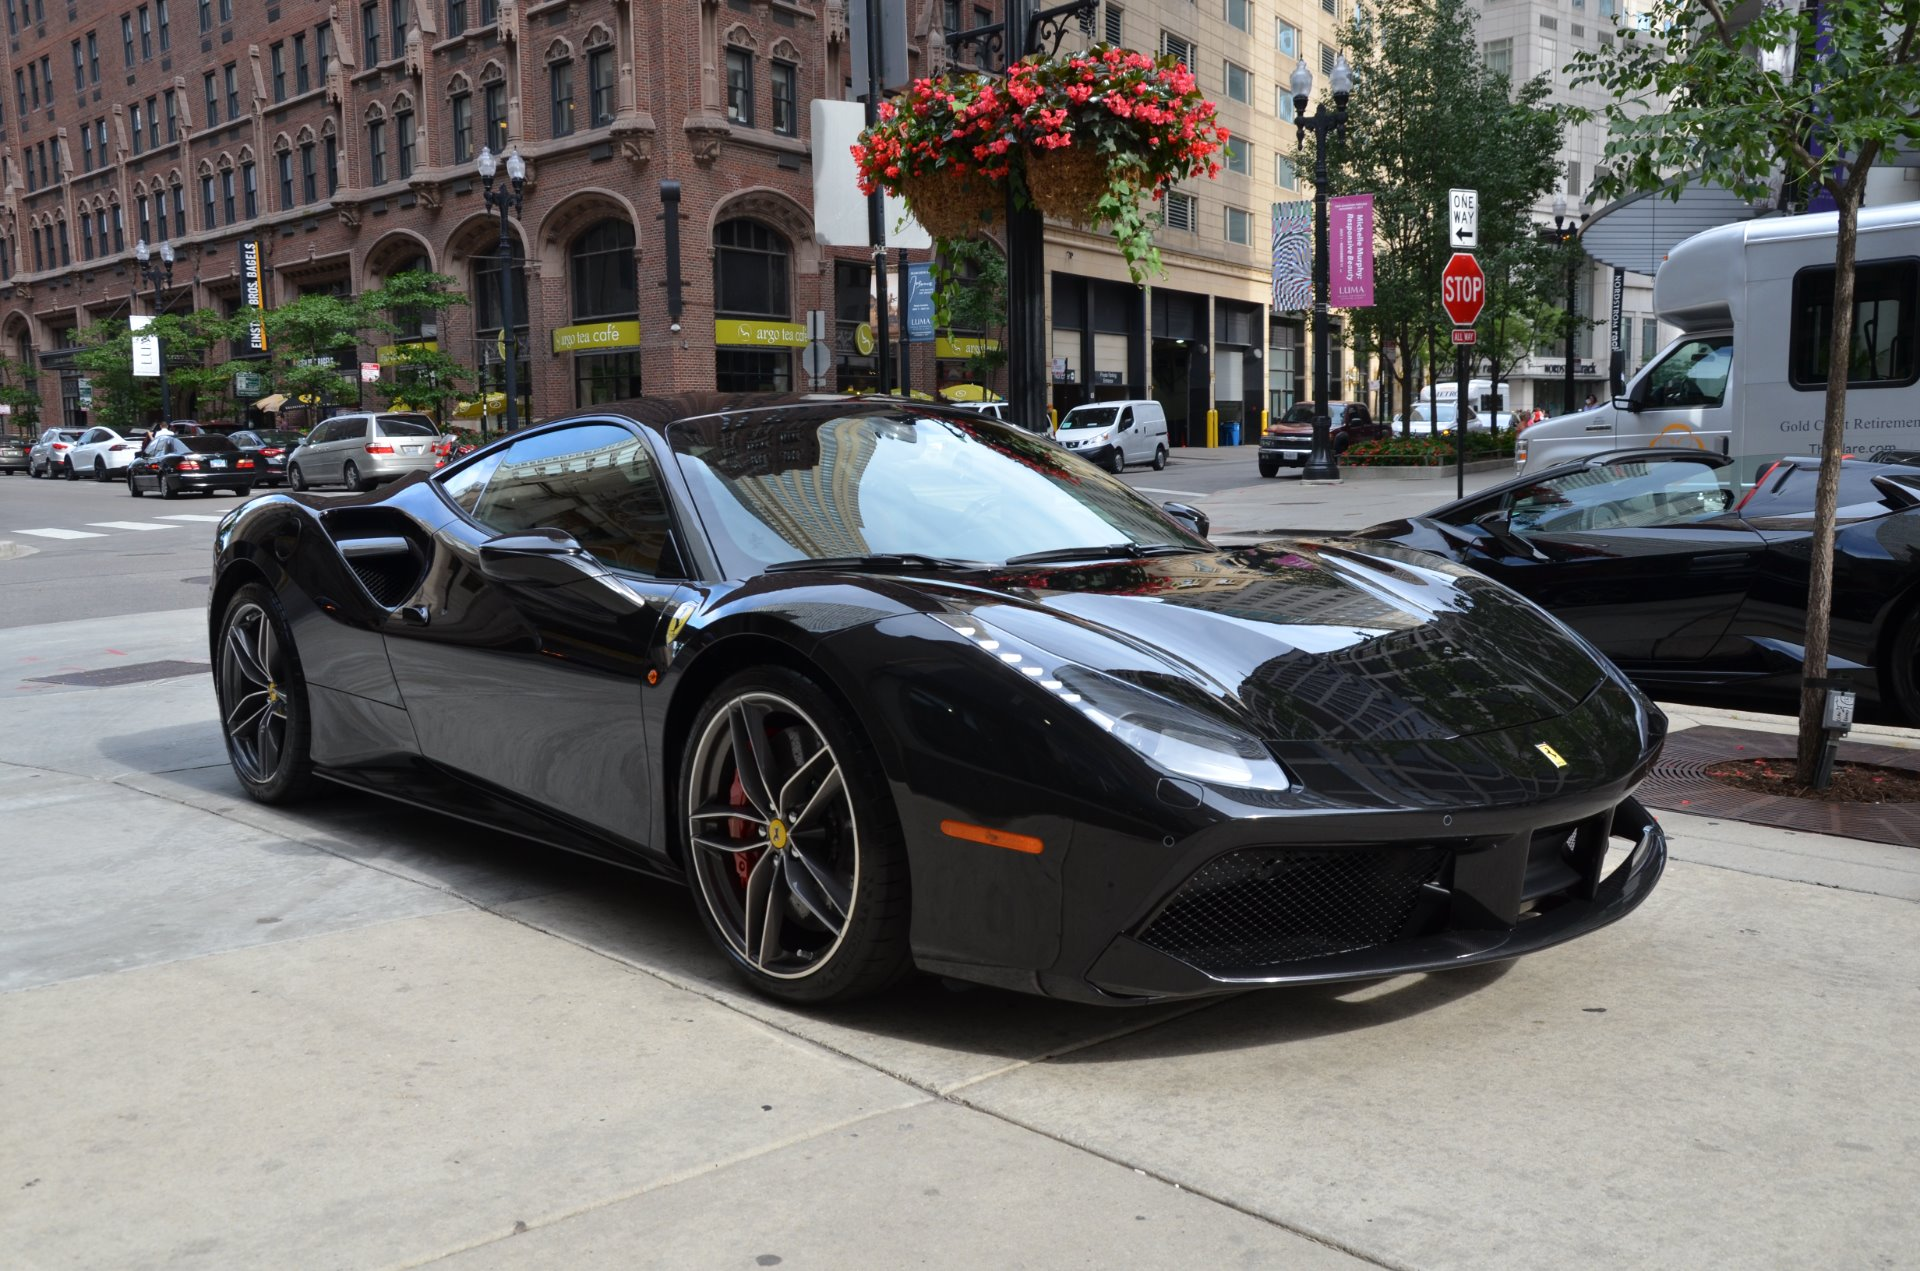 c for stock htm l used main albany near sale speciale ny ferrari